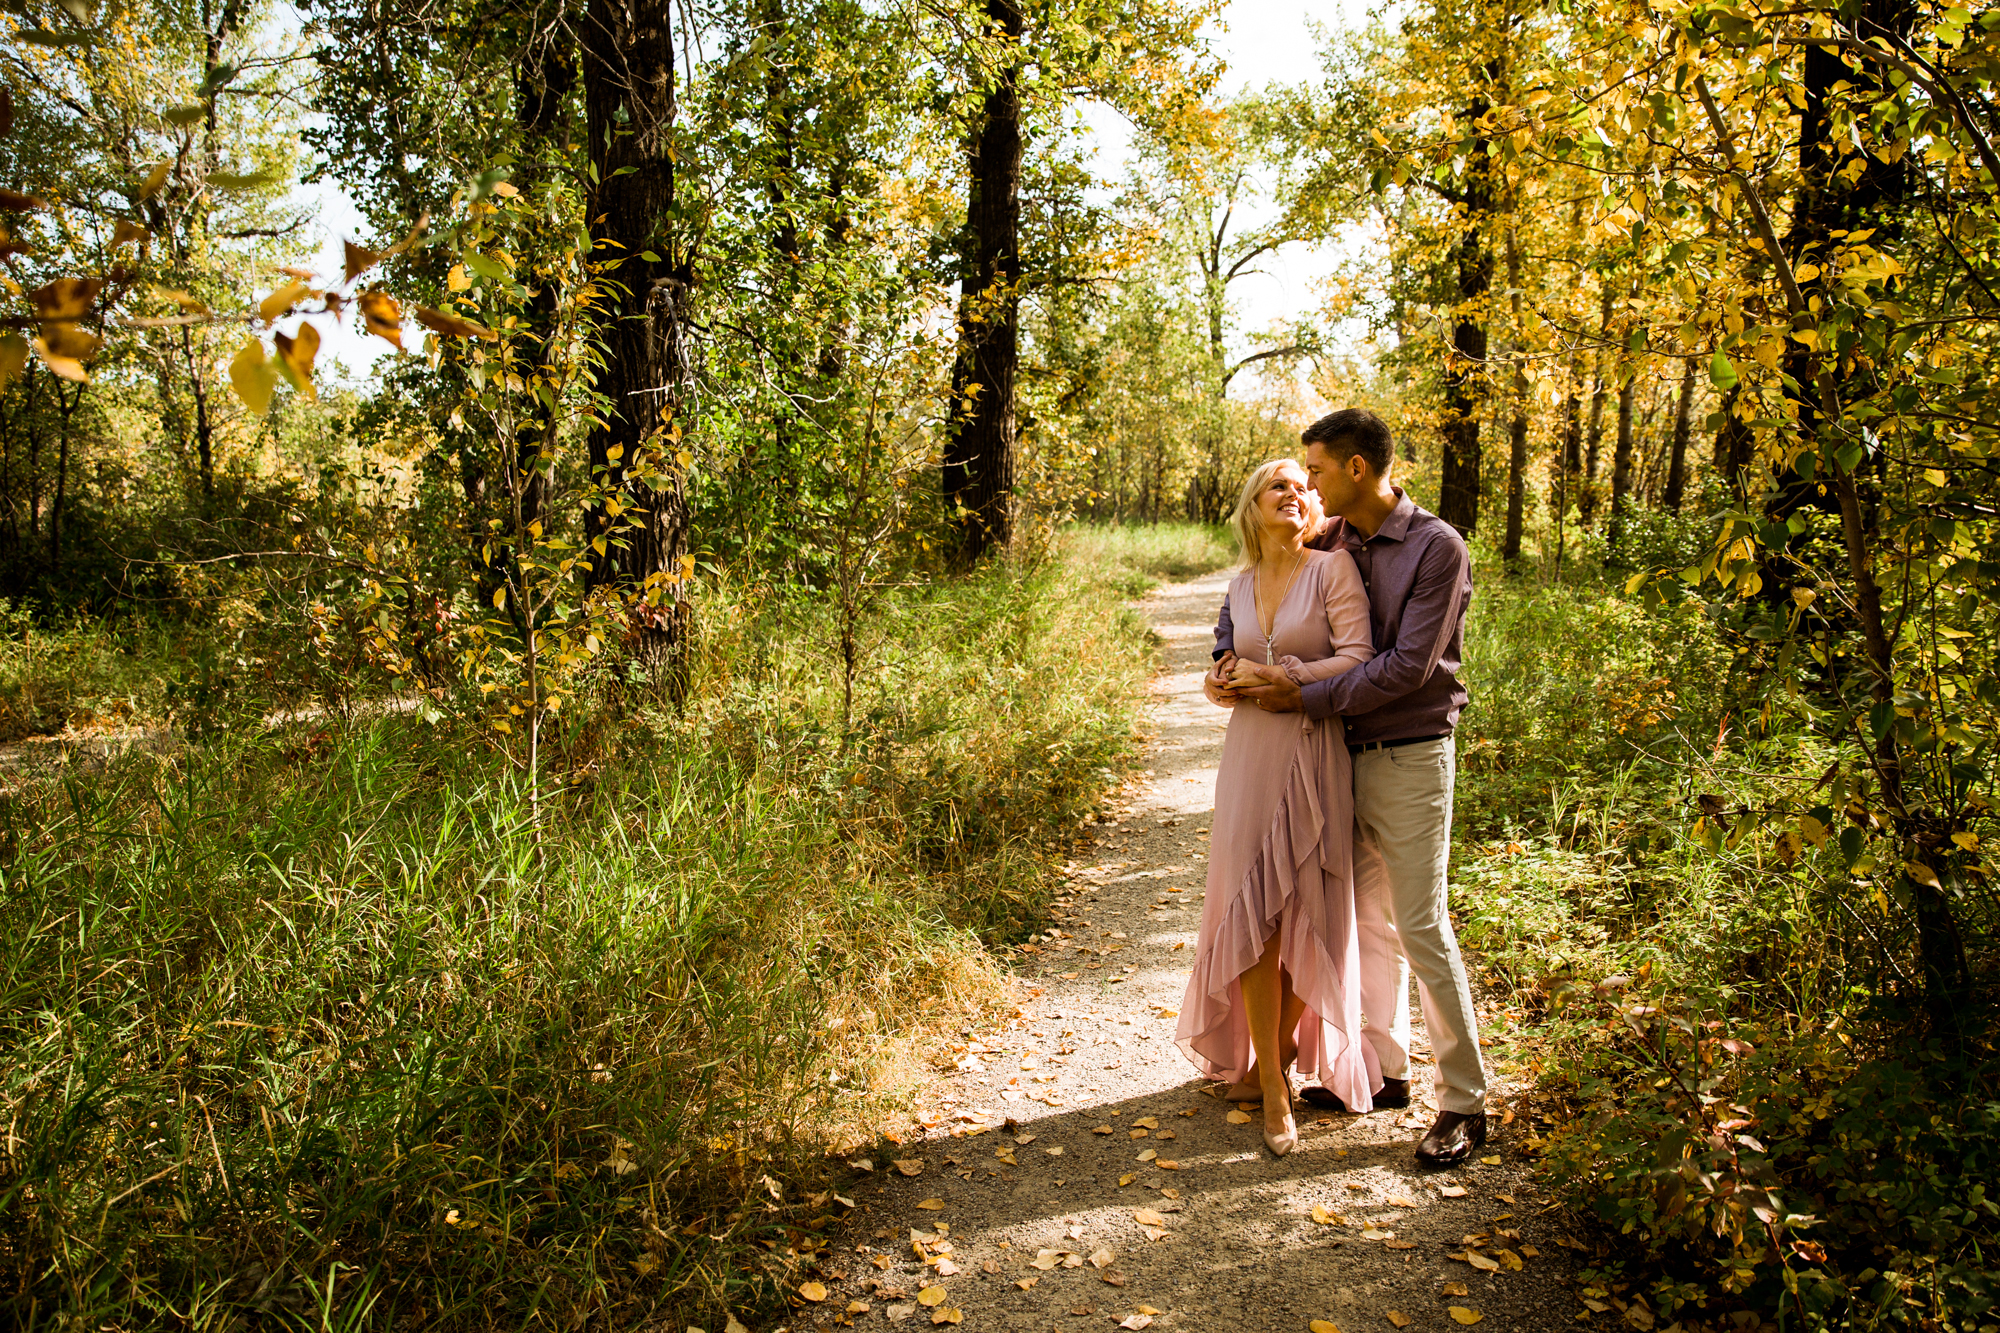 Calgary engagement and wedding photographer, summer engagement photos at Bowness Park